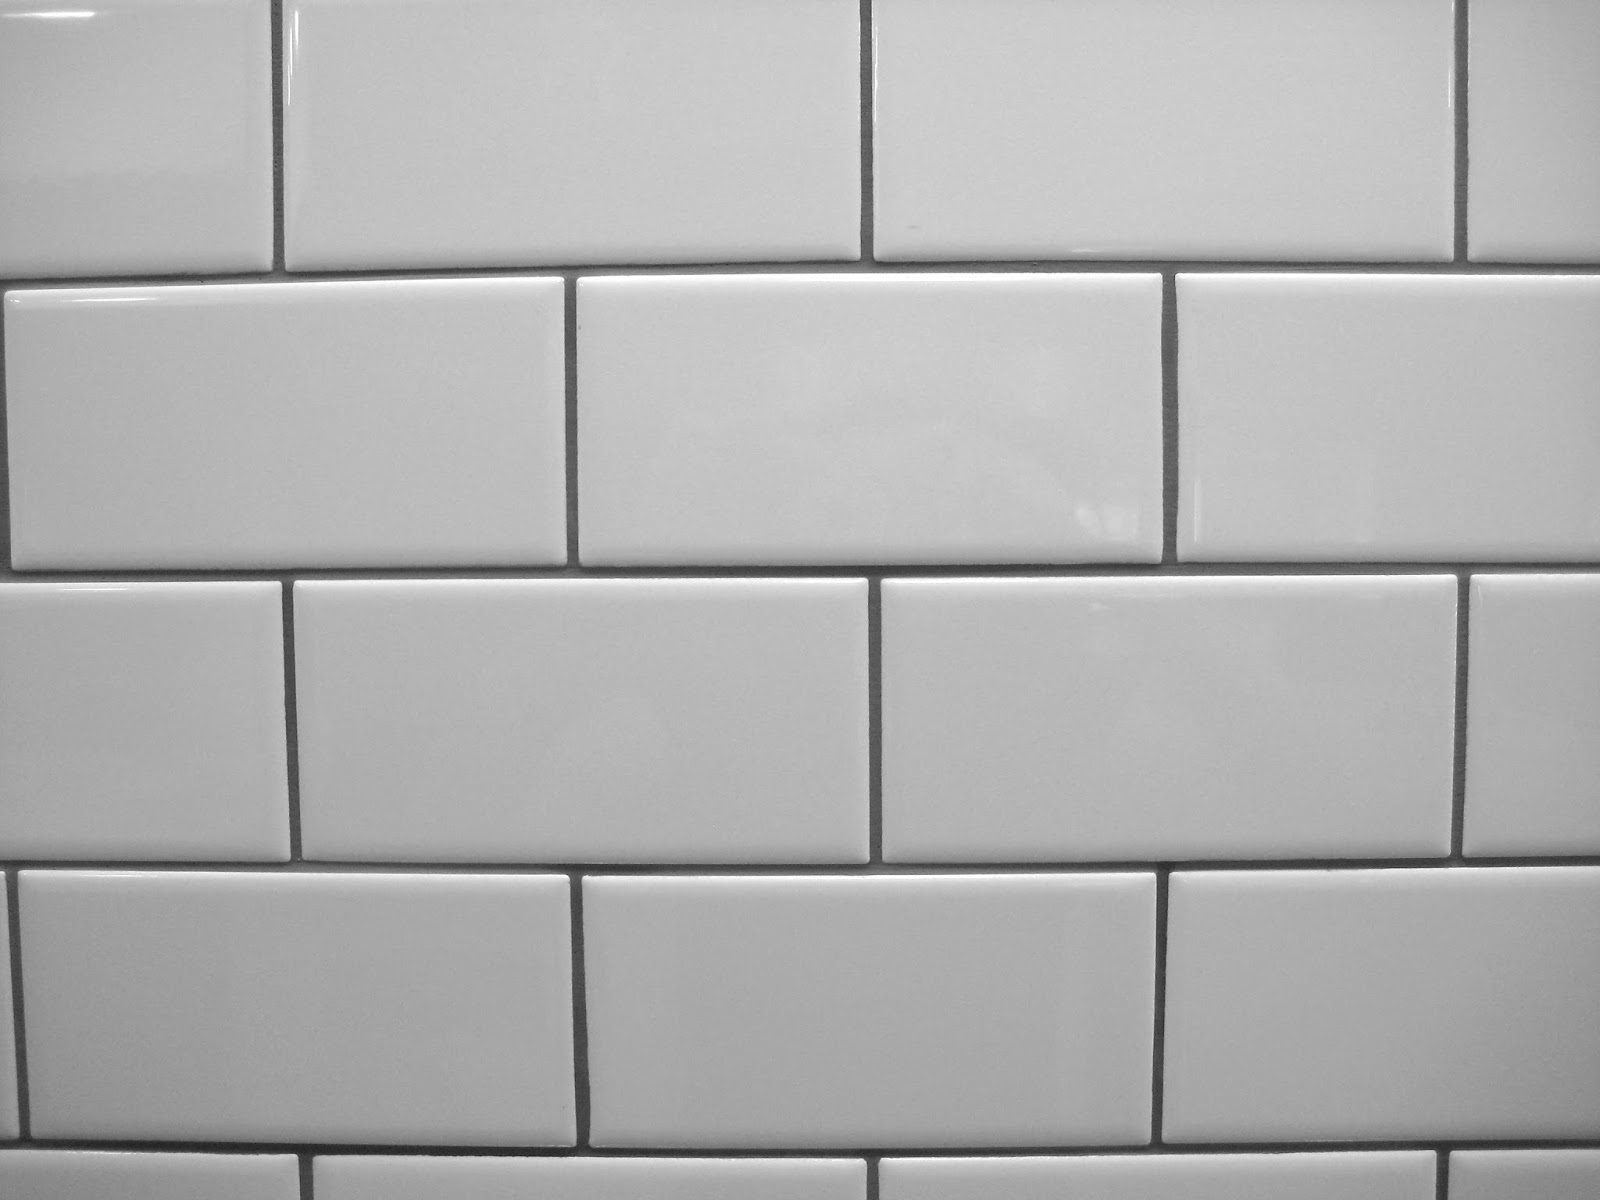 Subway Tile Background Inside Out Between Tile And A Hard Place